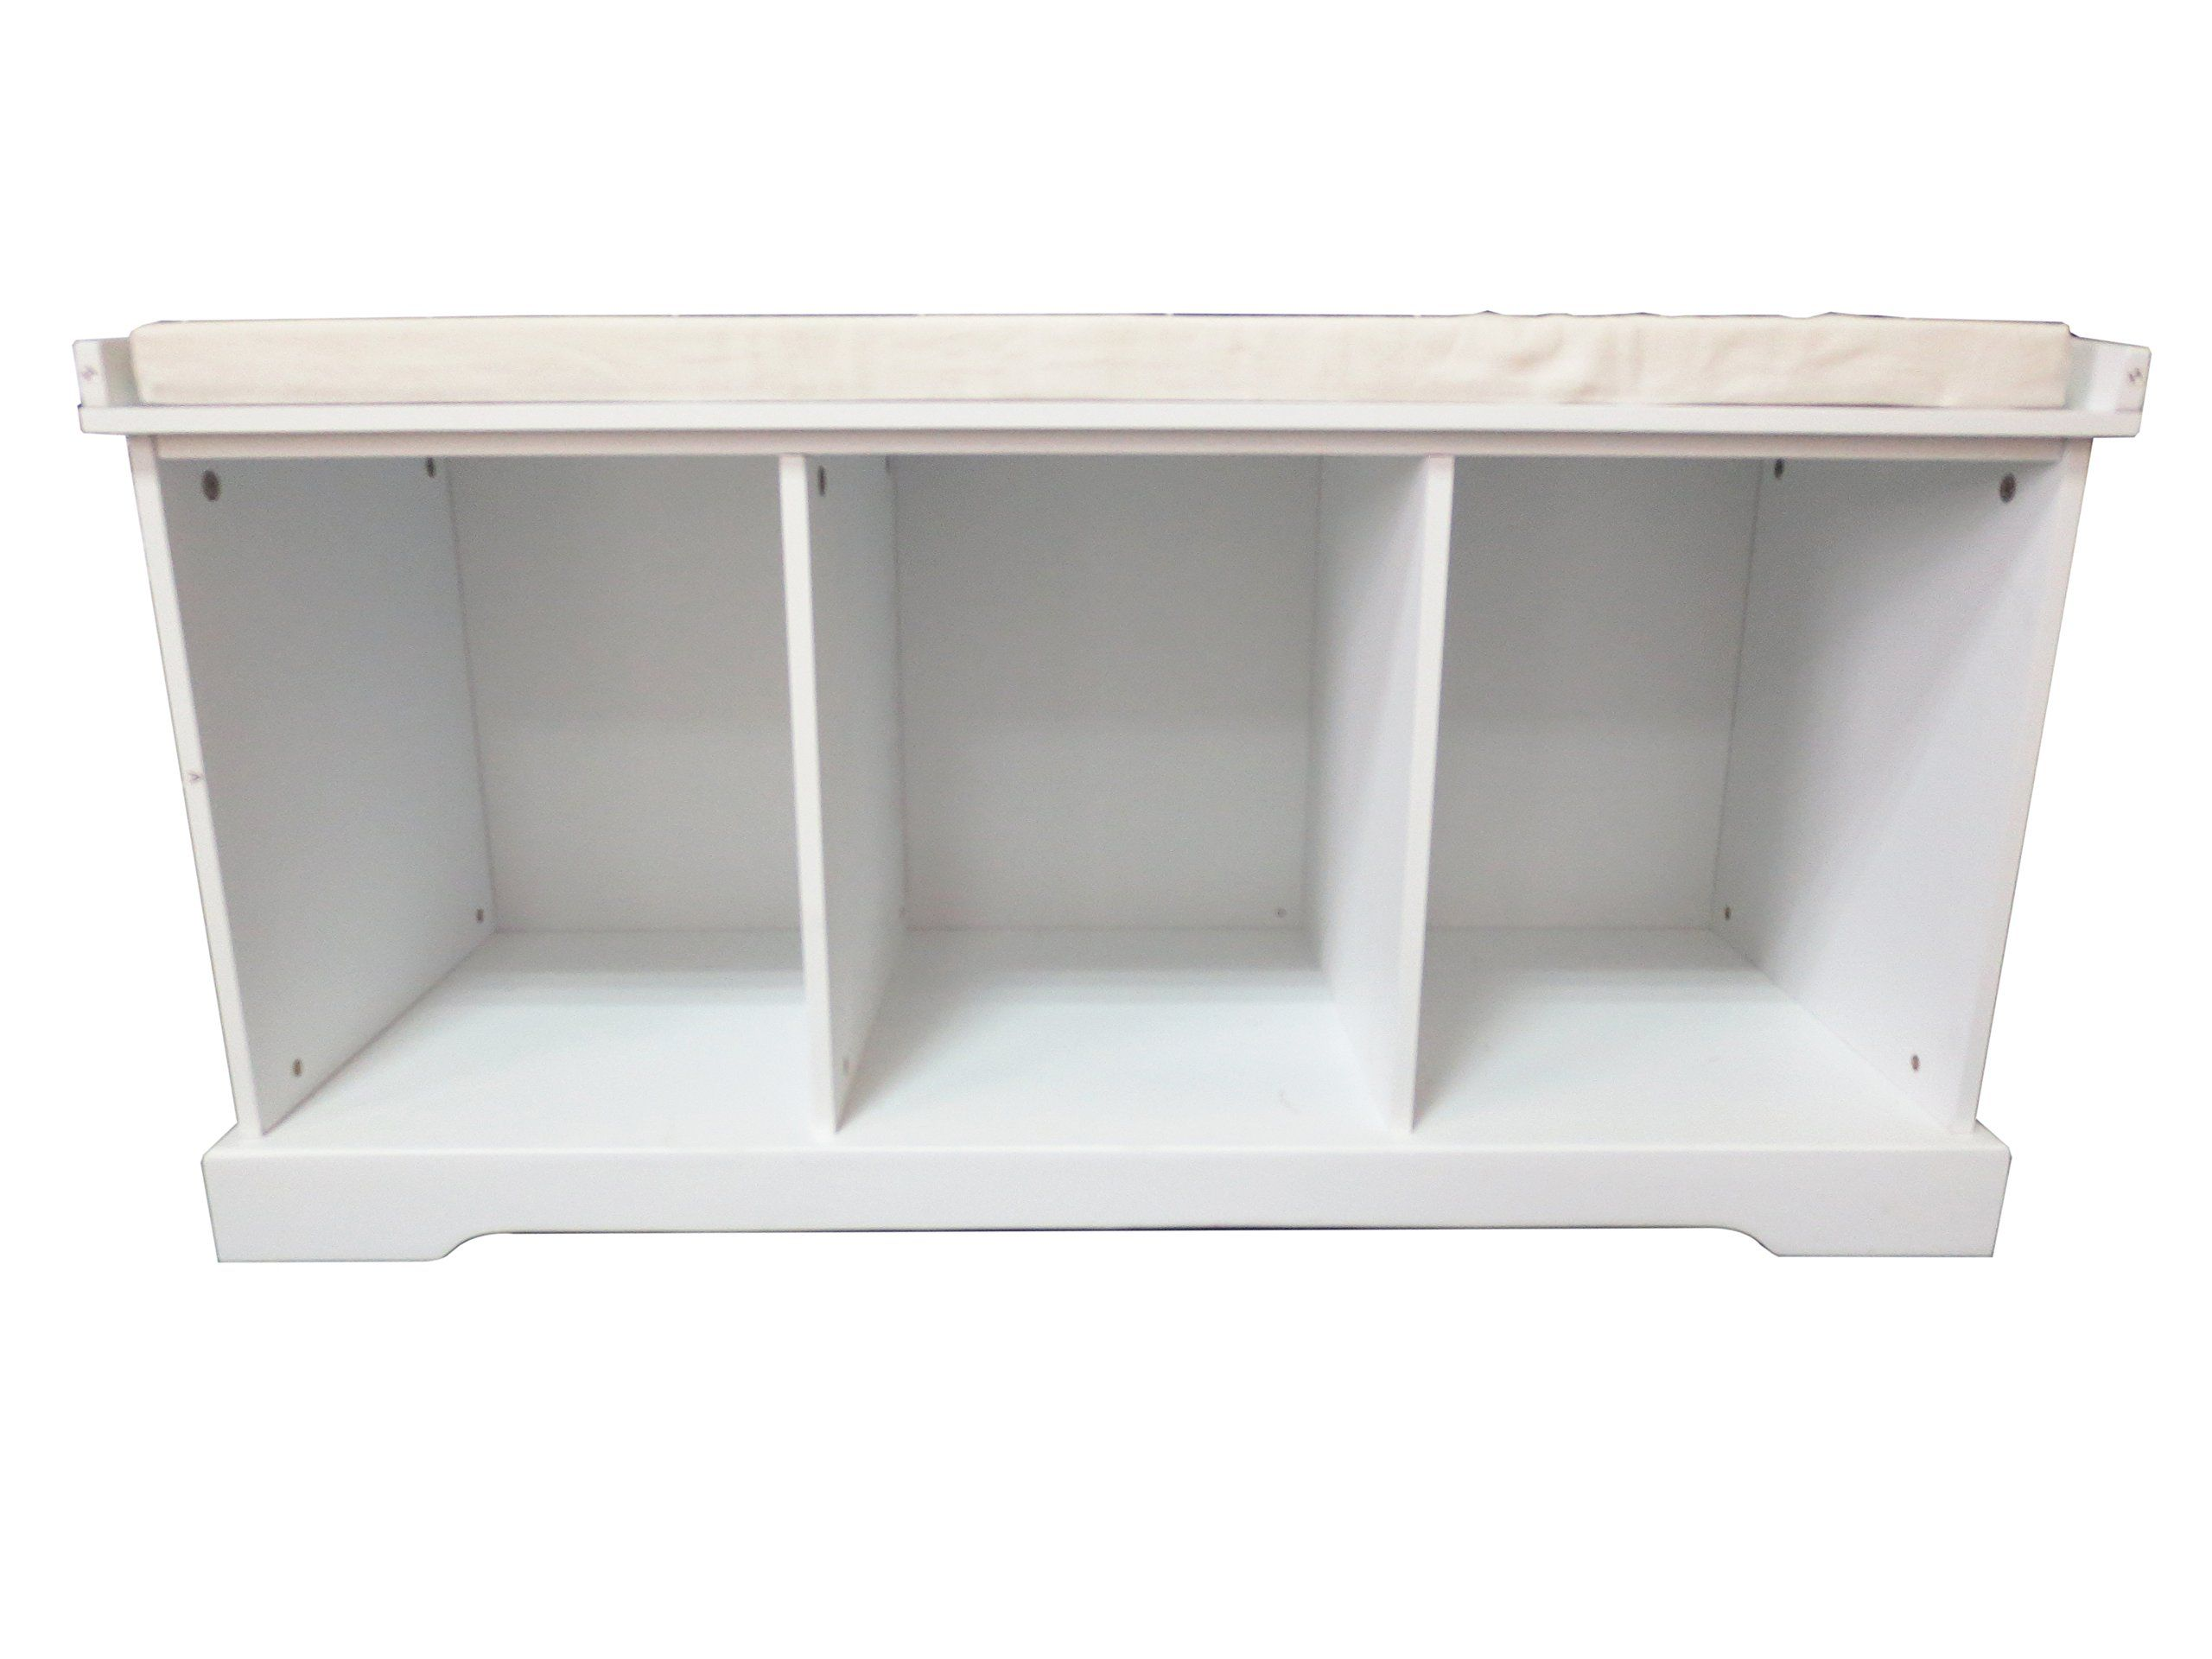 Inskeppa White Entryway Storage Bench Cubby